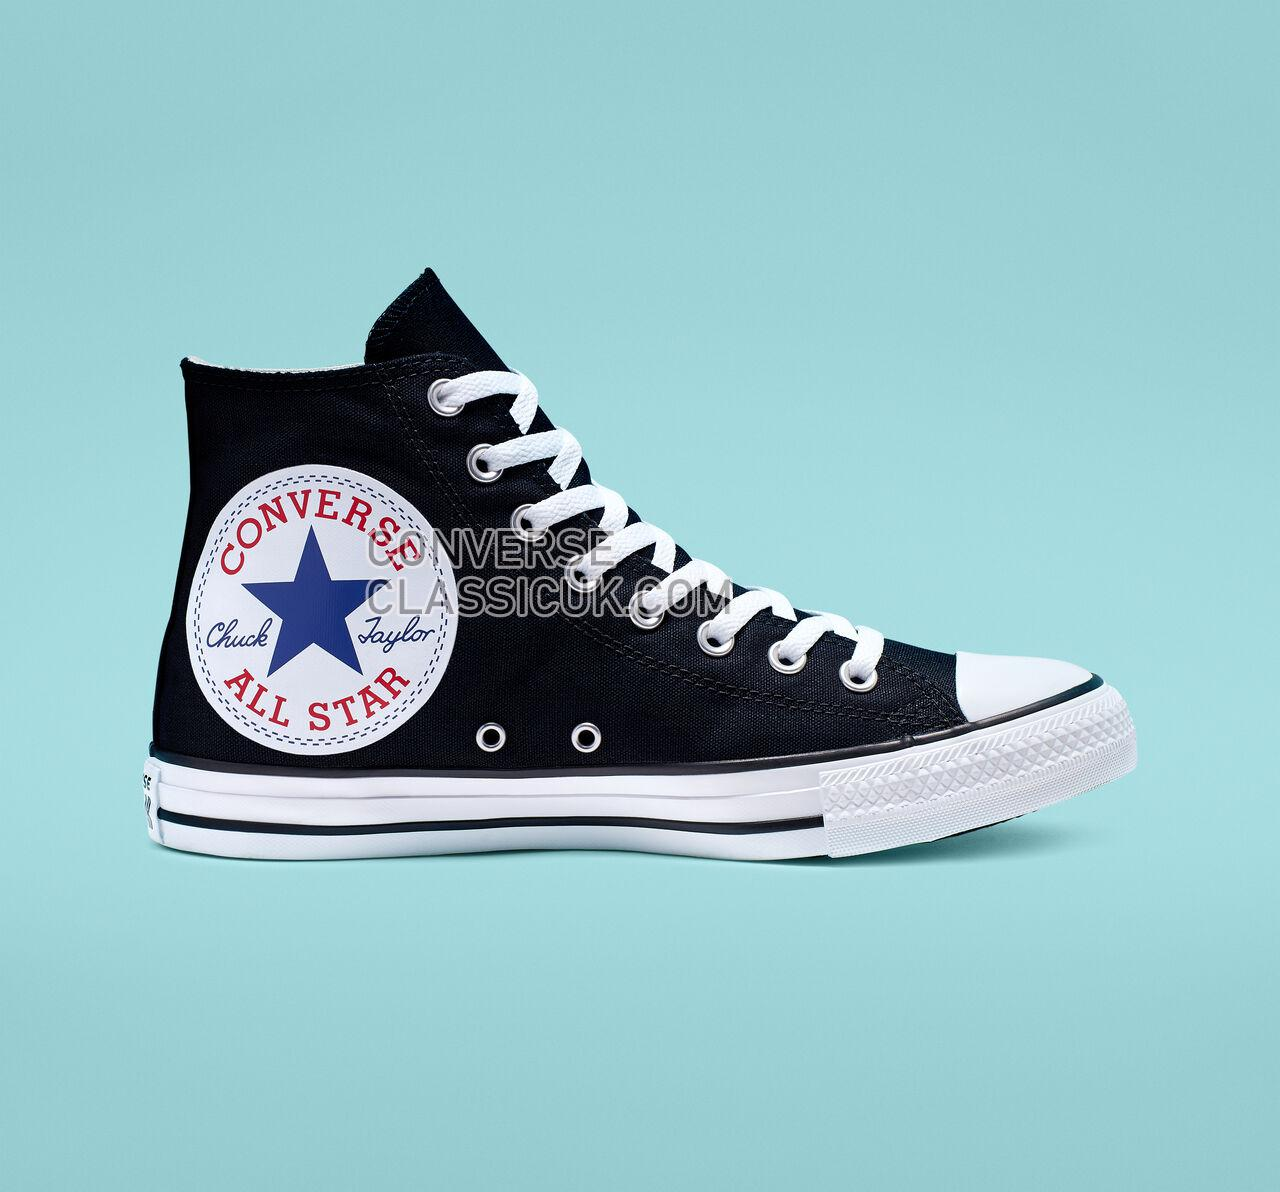 Converse Chuck Taylor All Star Oversized Logo High Top Mens Womens Unisex 165694C Black/White/Black Shoes